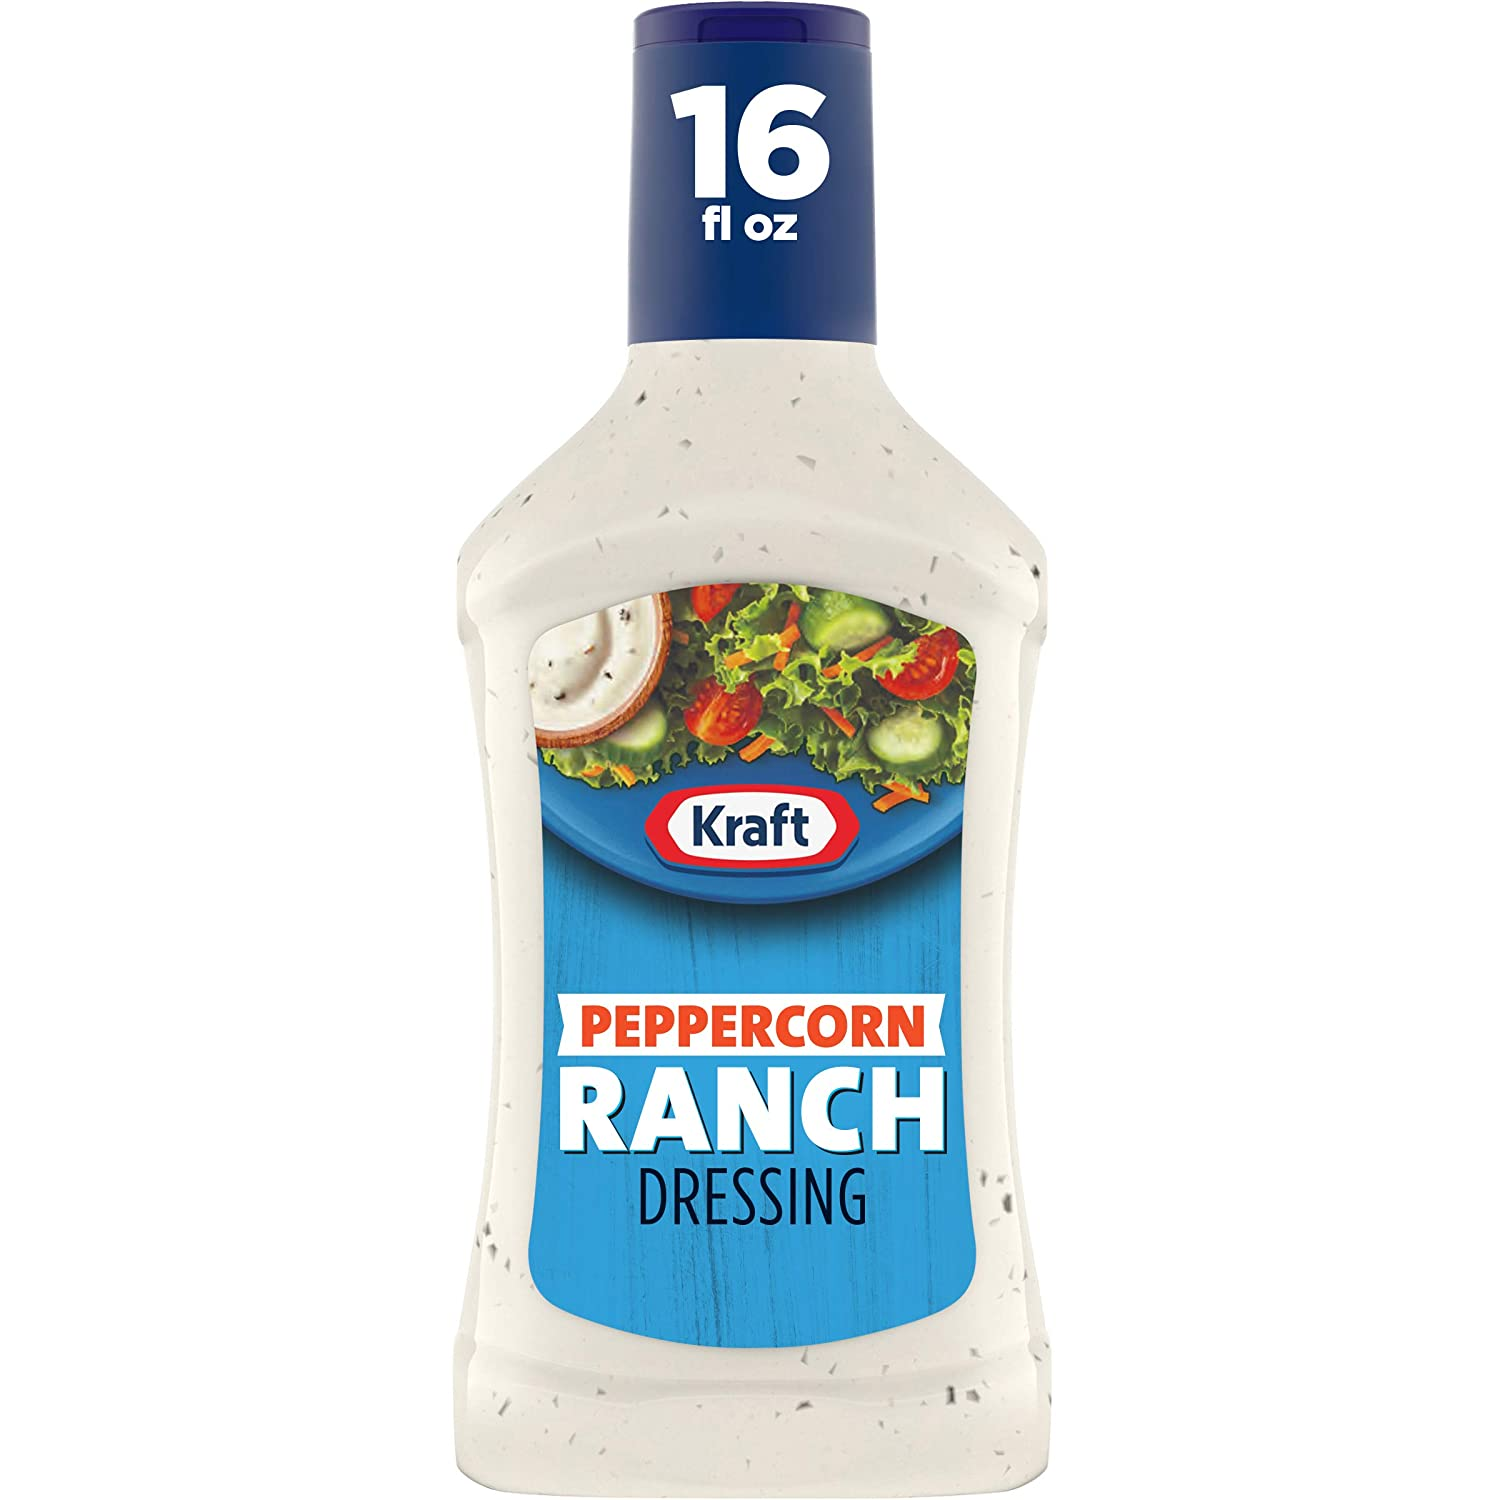 Kraft Peppercorn Ranch Salad Dressing (16 fl oz Bottles, Pack of 6)